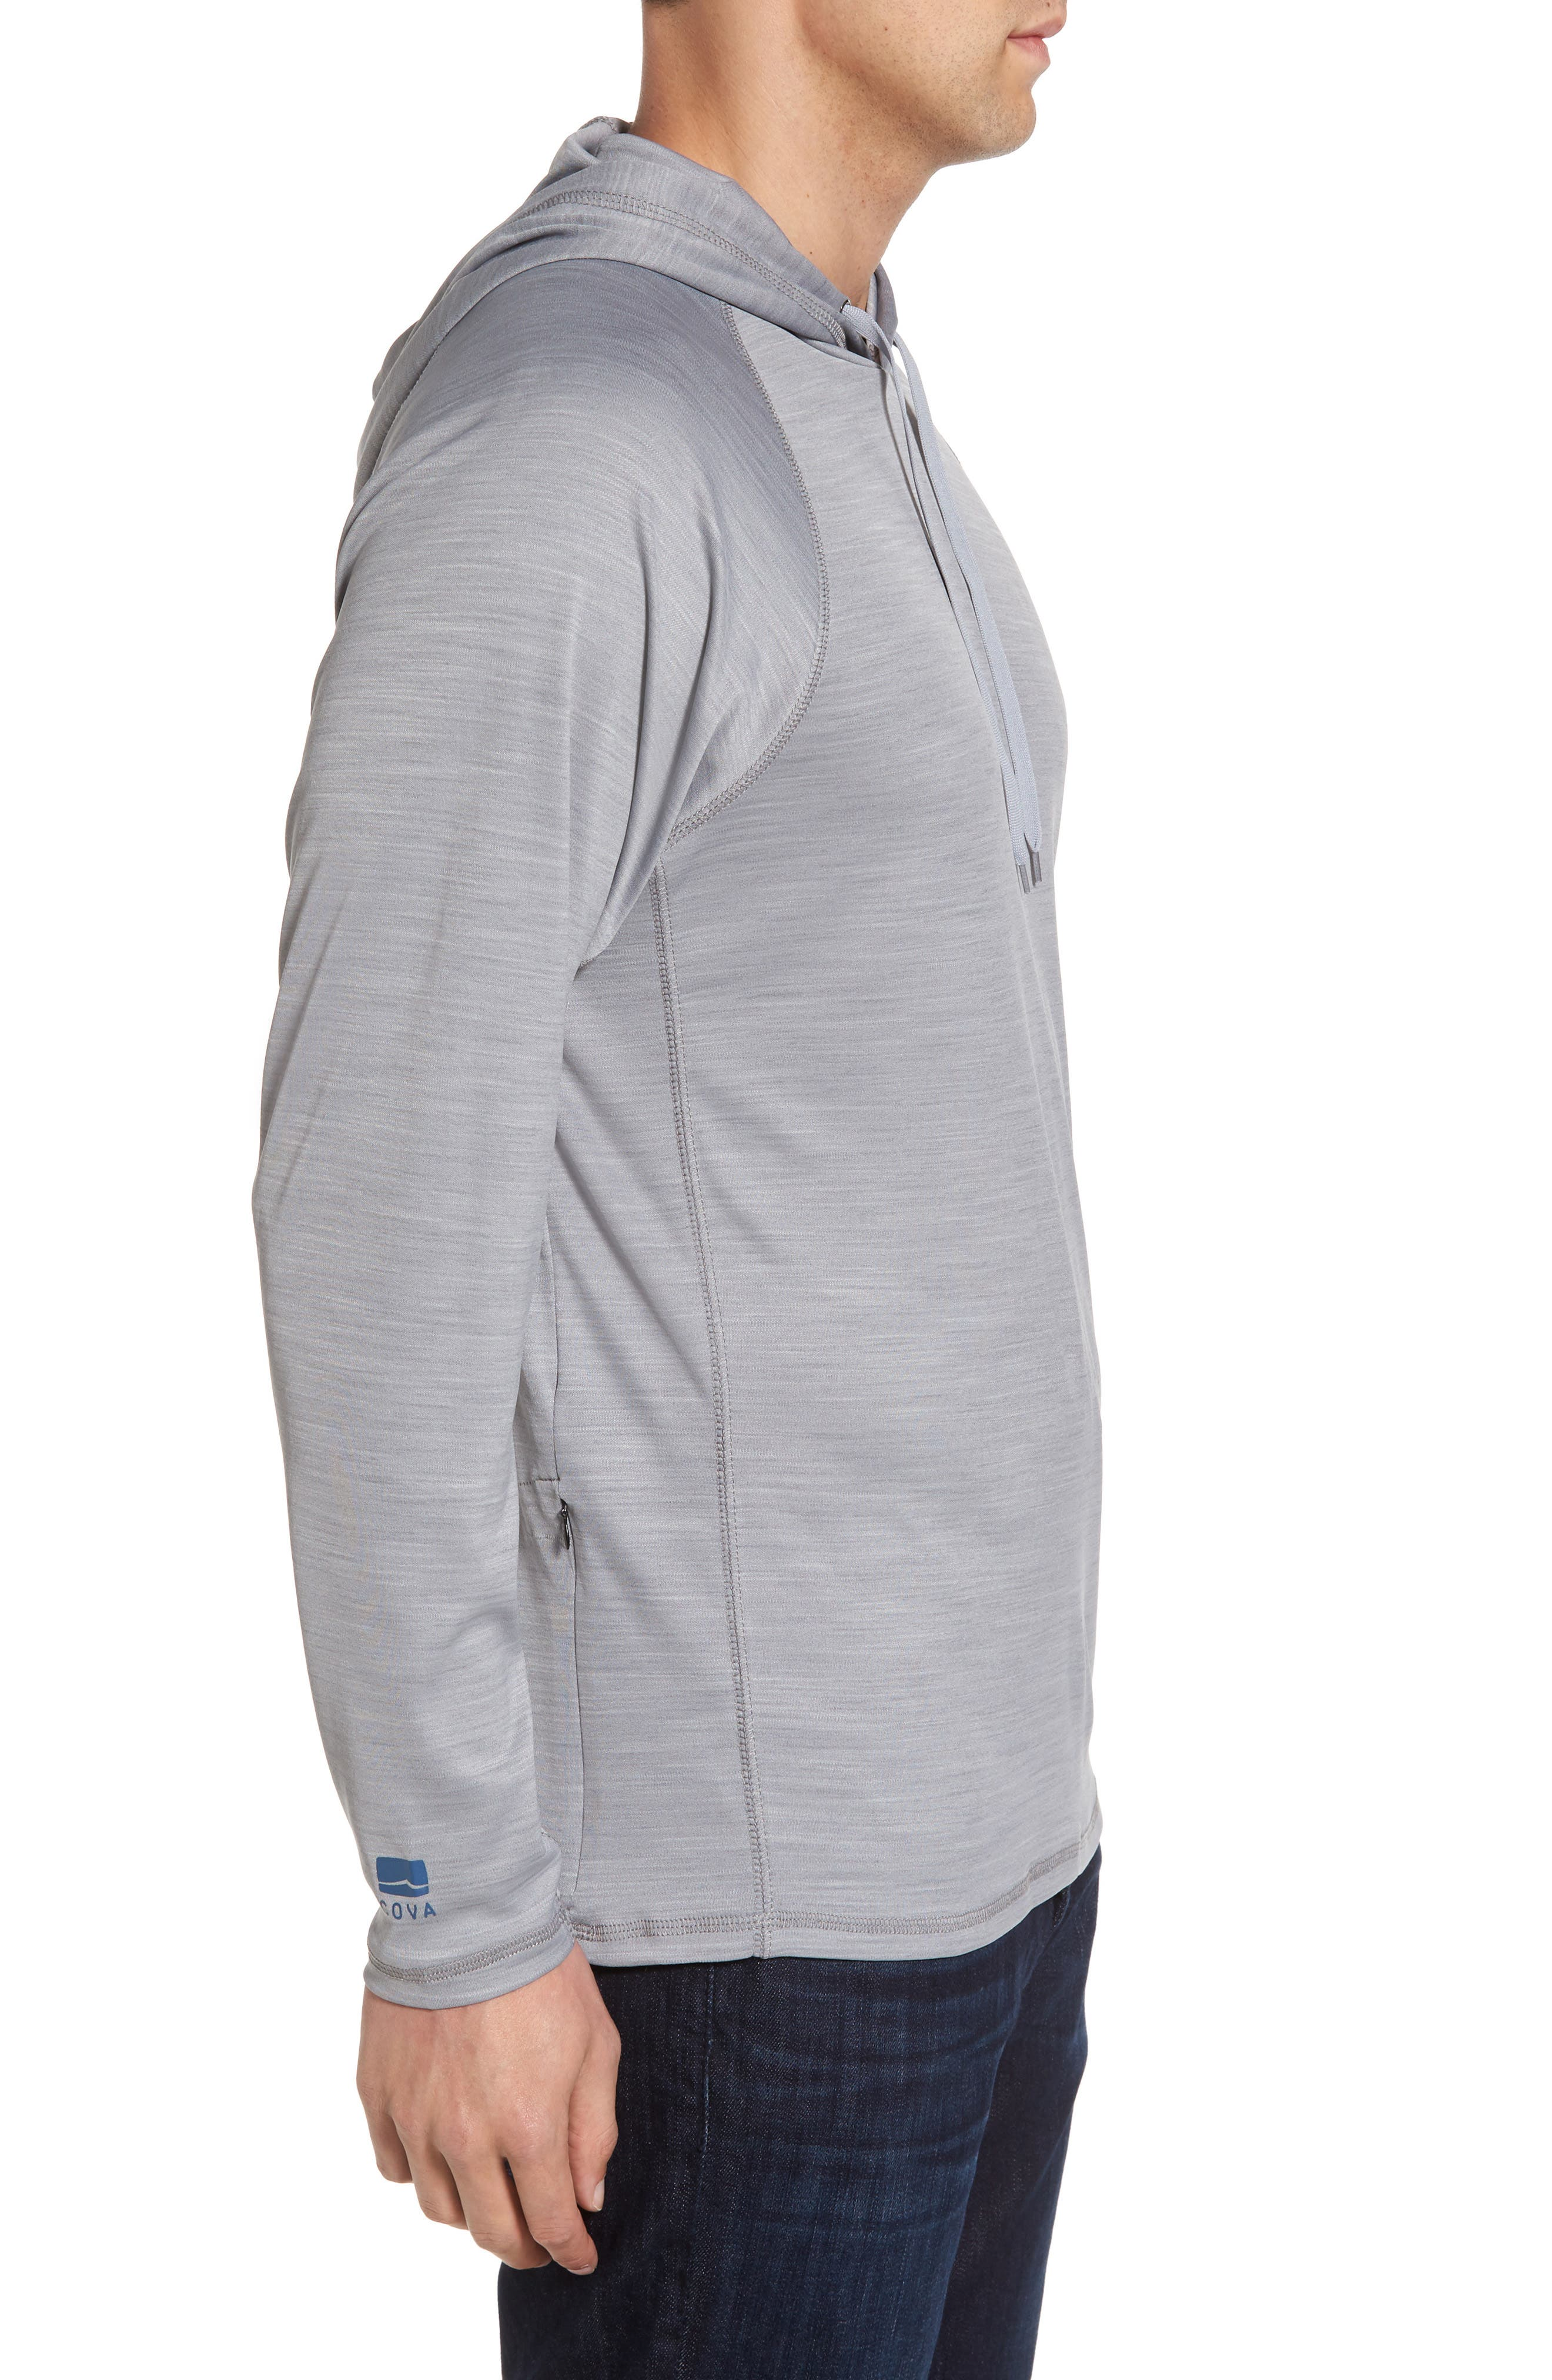 Undercover Hooded Long Sleeve Performance T-Shirt,                             Alternate thumbnail 3, color,                             020